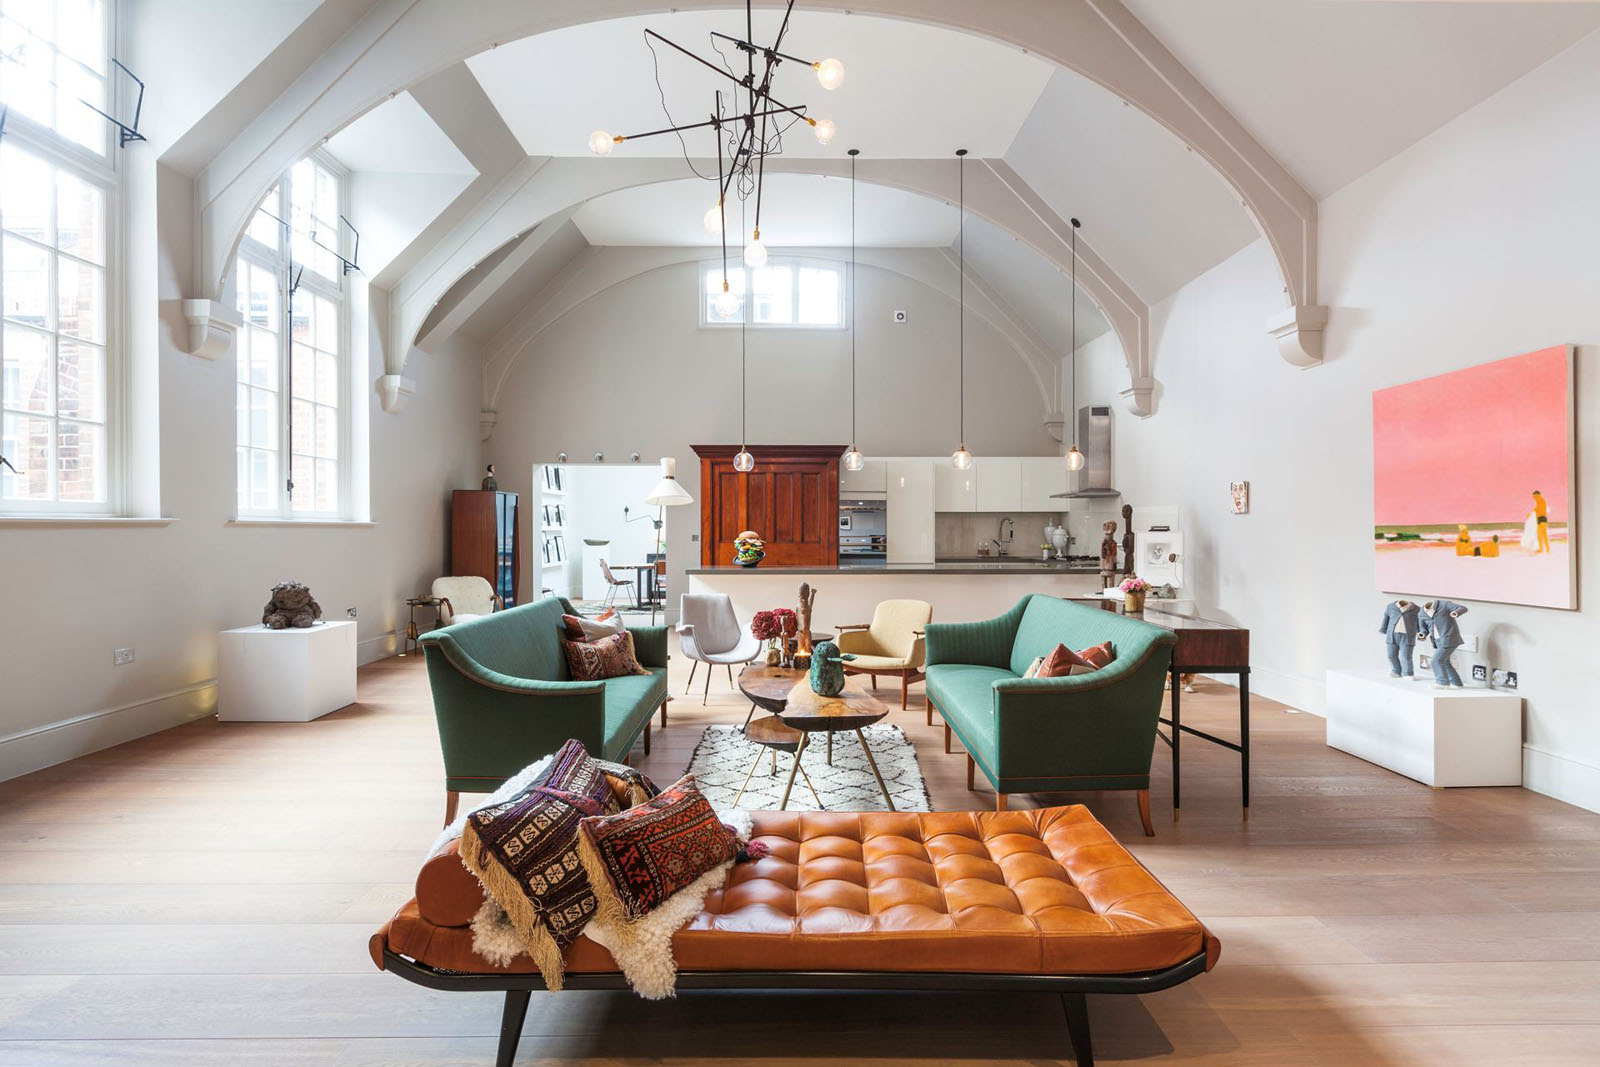 1900s Courthouse With Dramatic Vaulted Ceiling Transformed Into ...